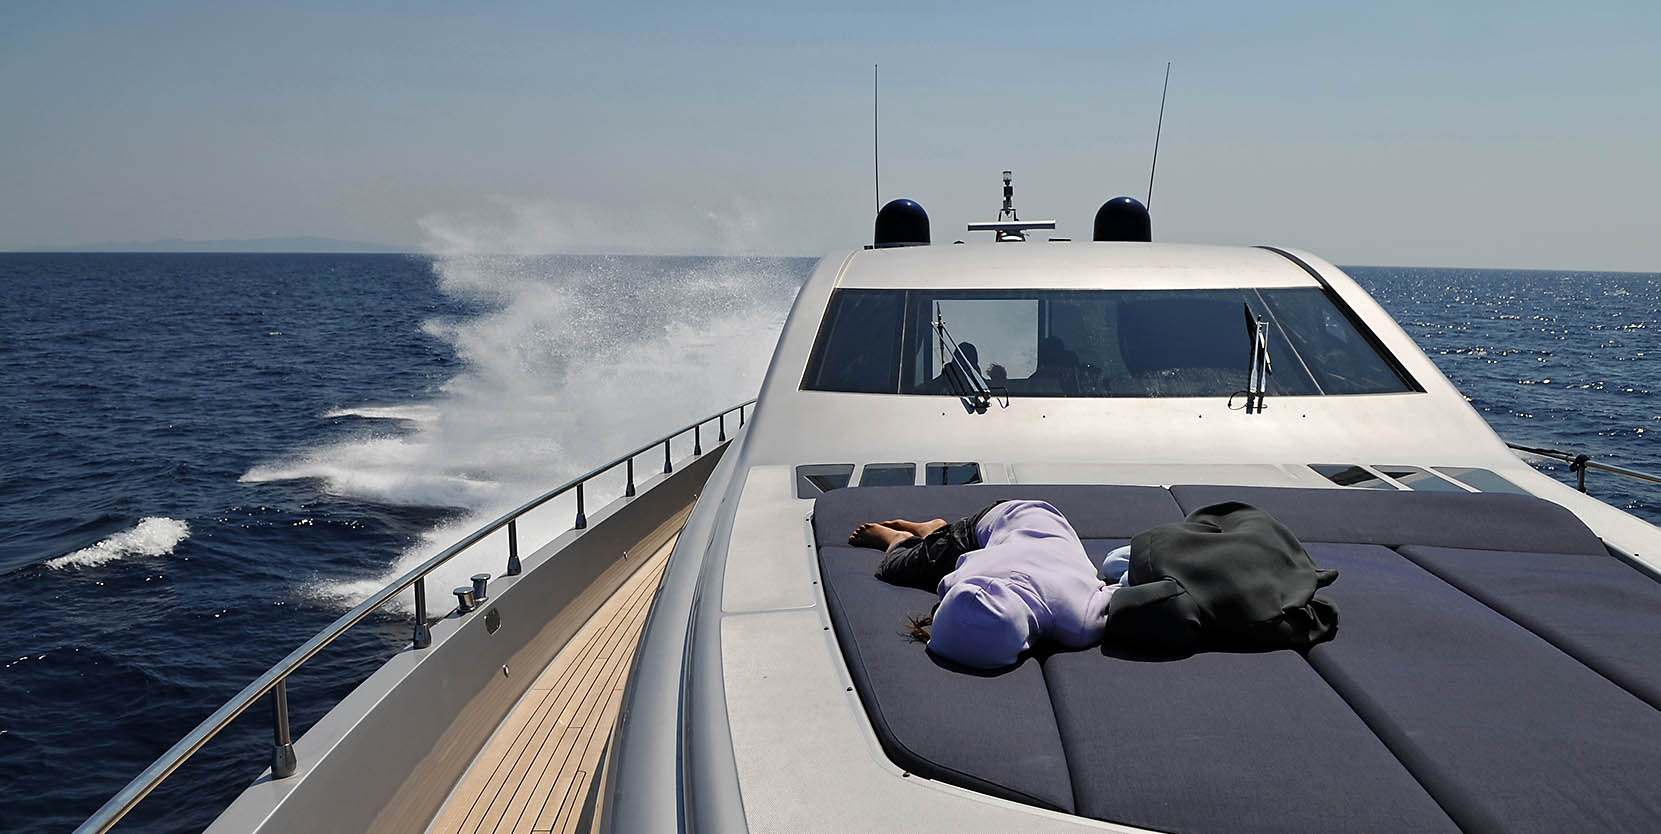 Full Day Tour to Ios with Luxury Yacht